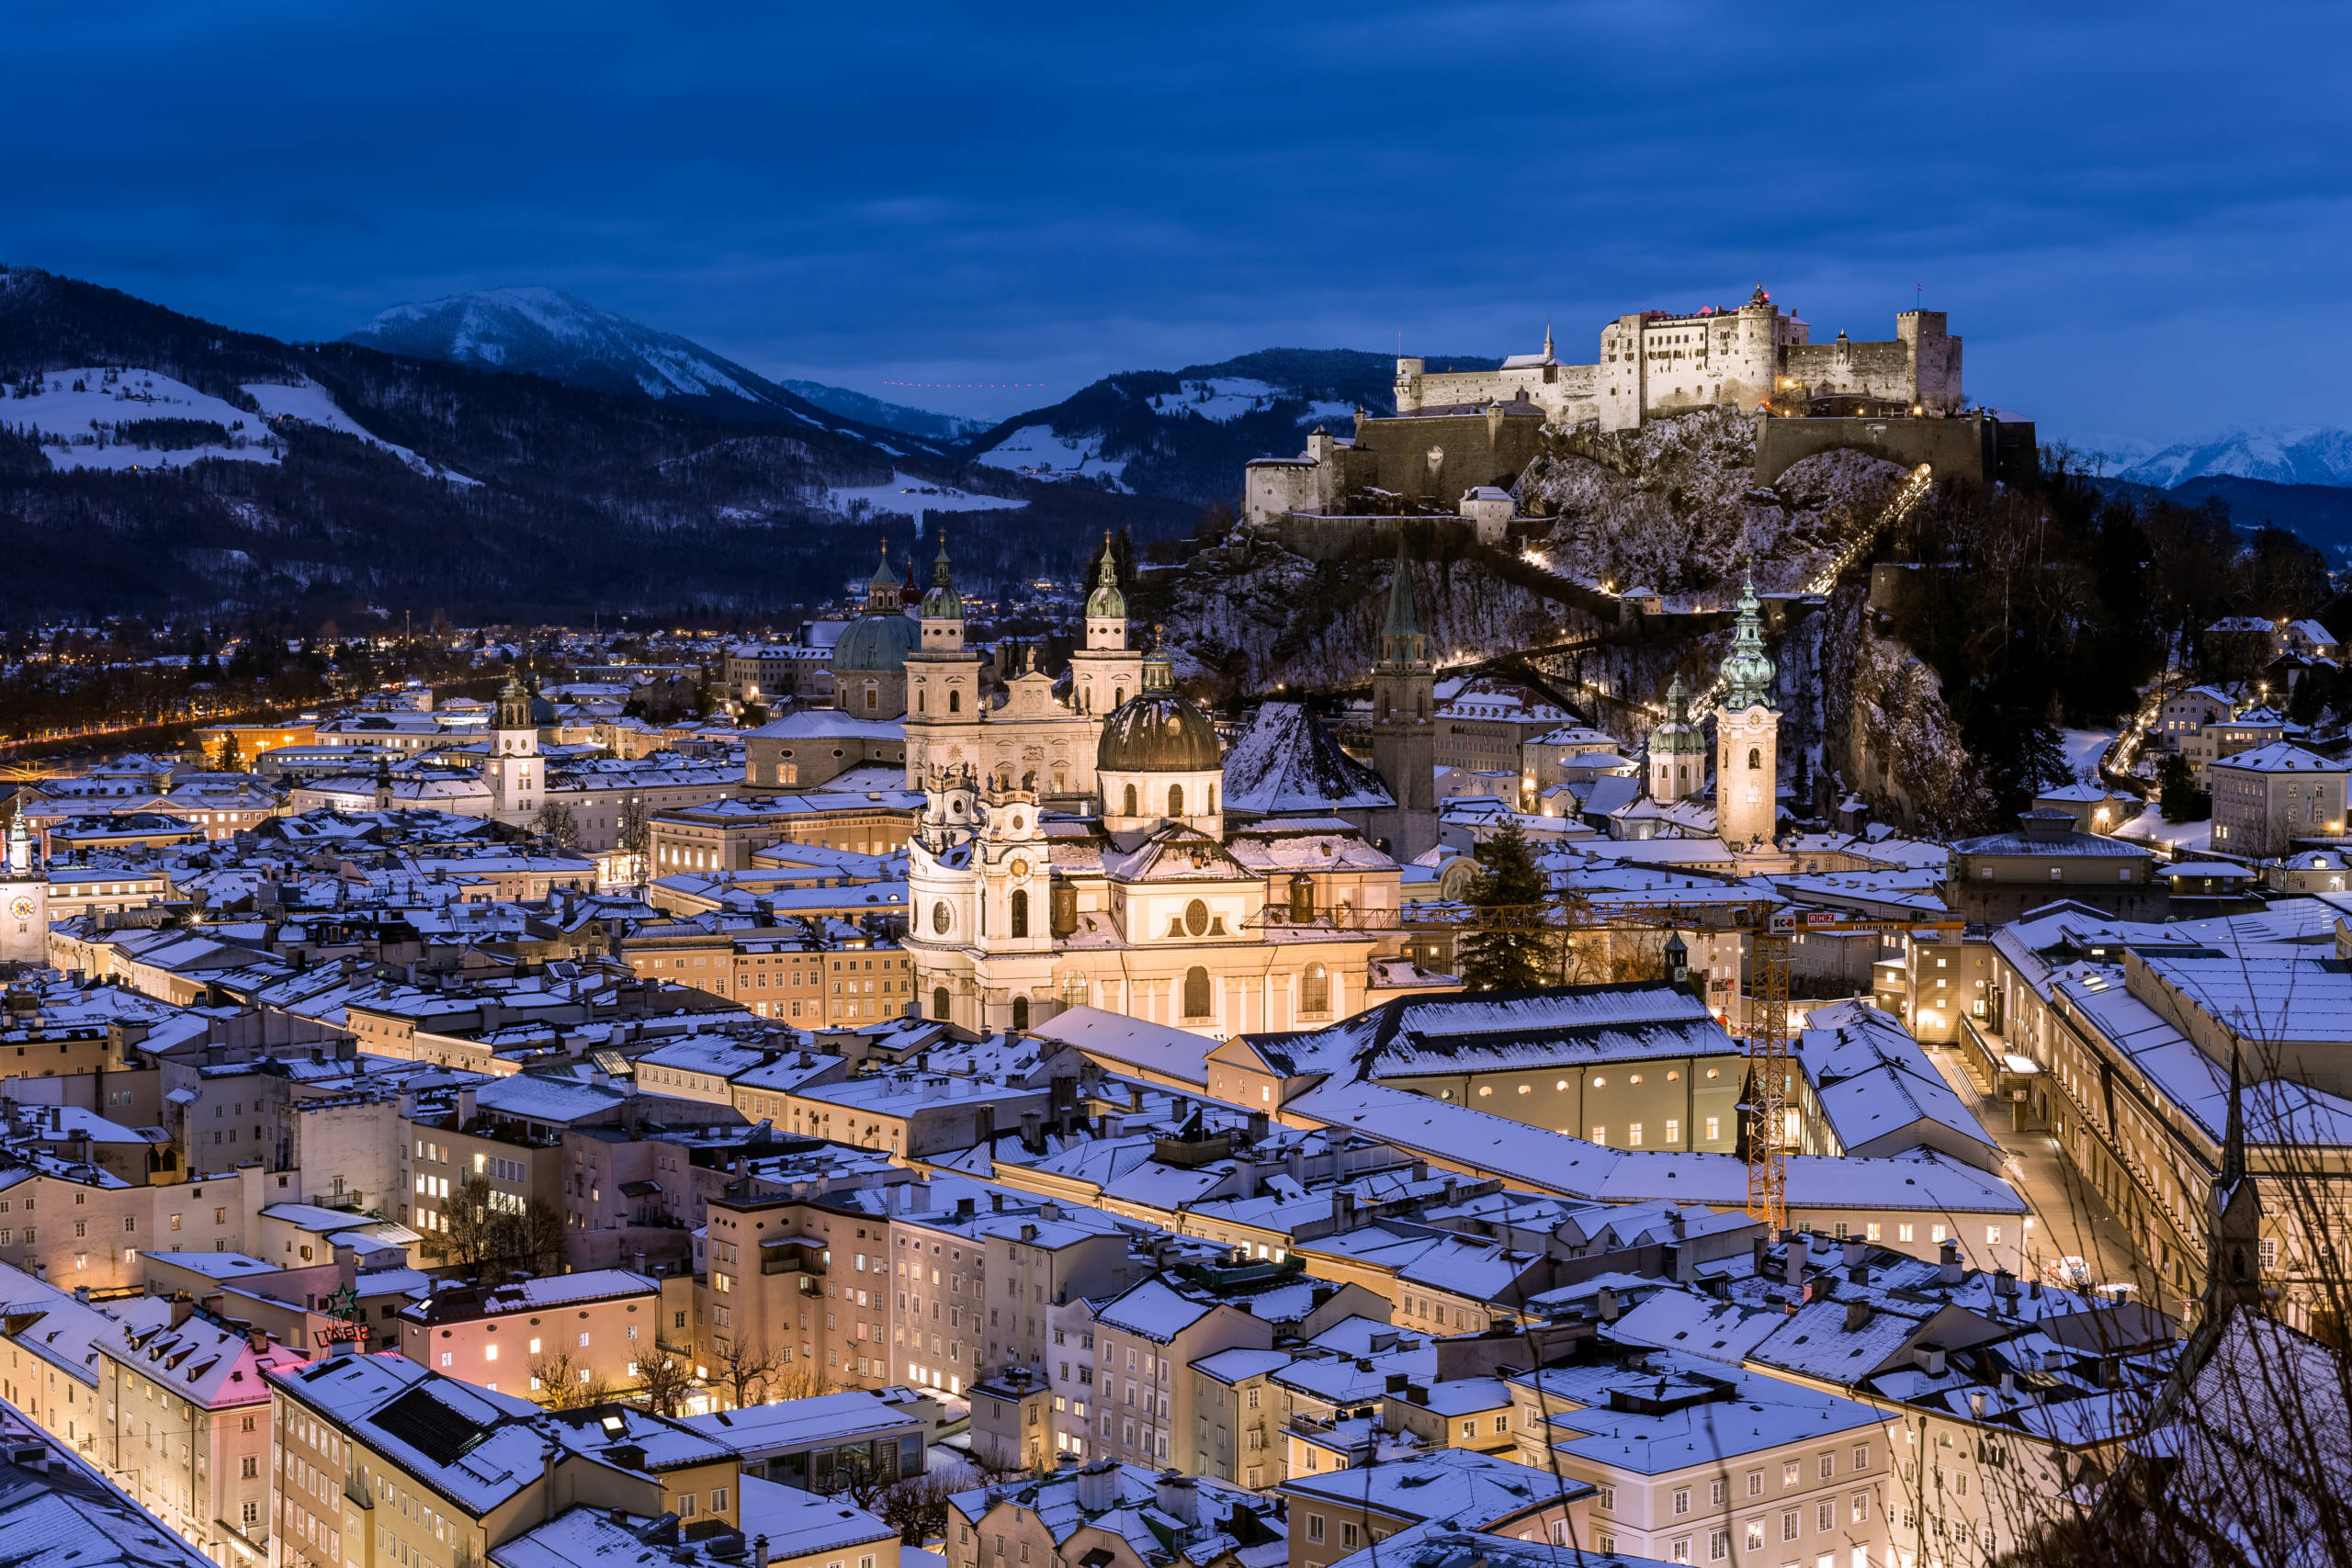 Off the beaten path: Tips on visiting and exploring Austria - The Points Guy